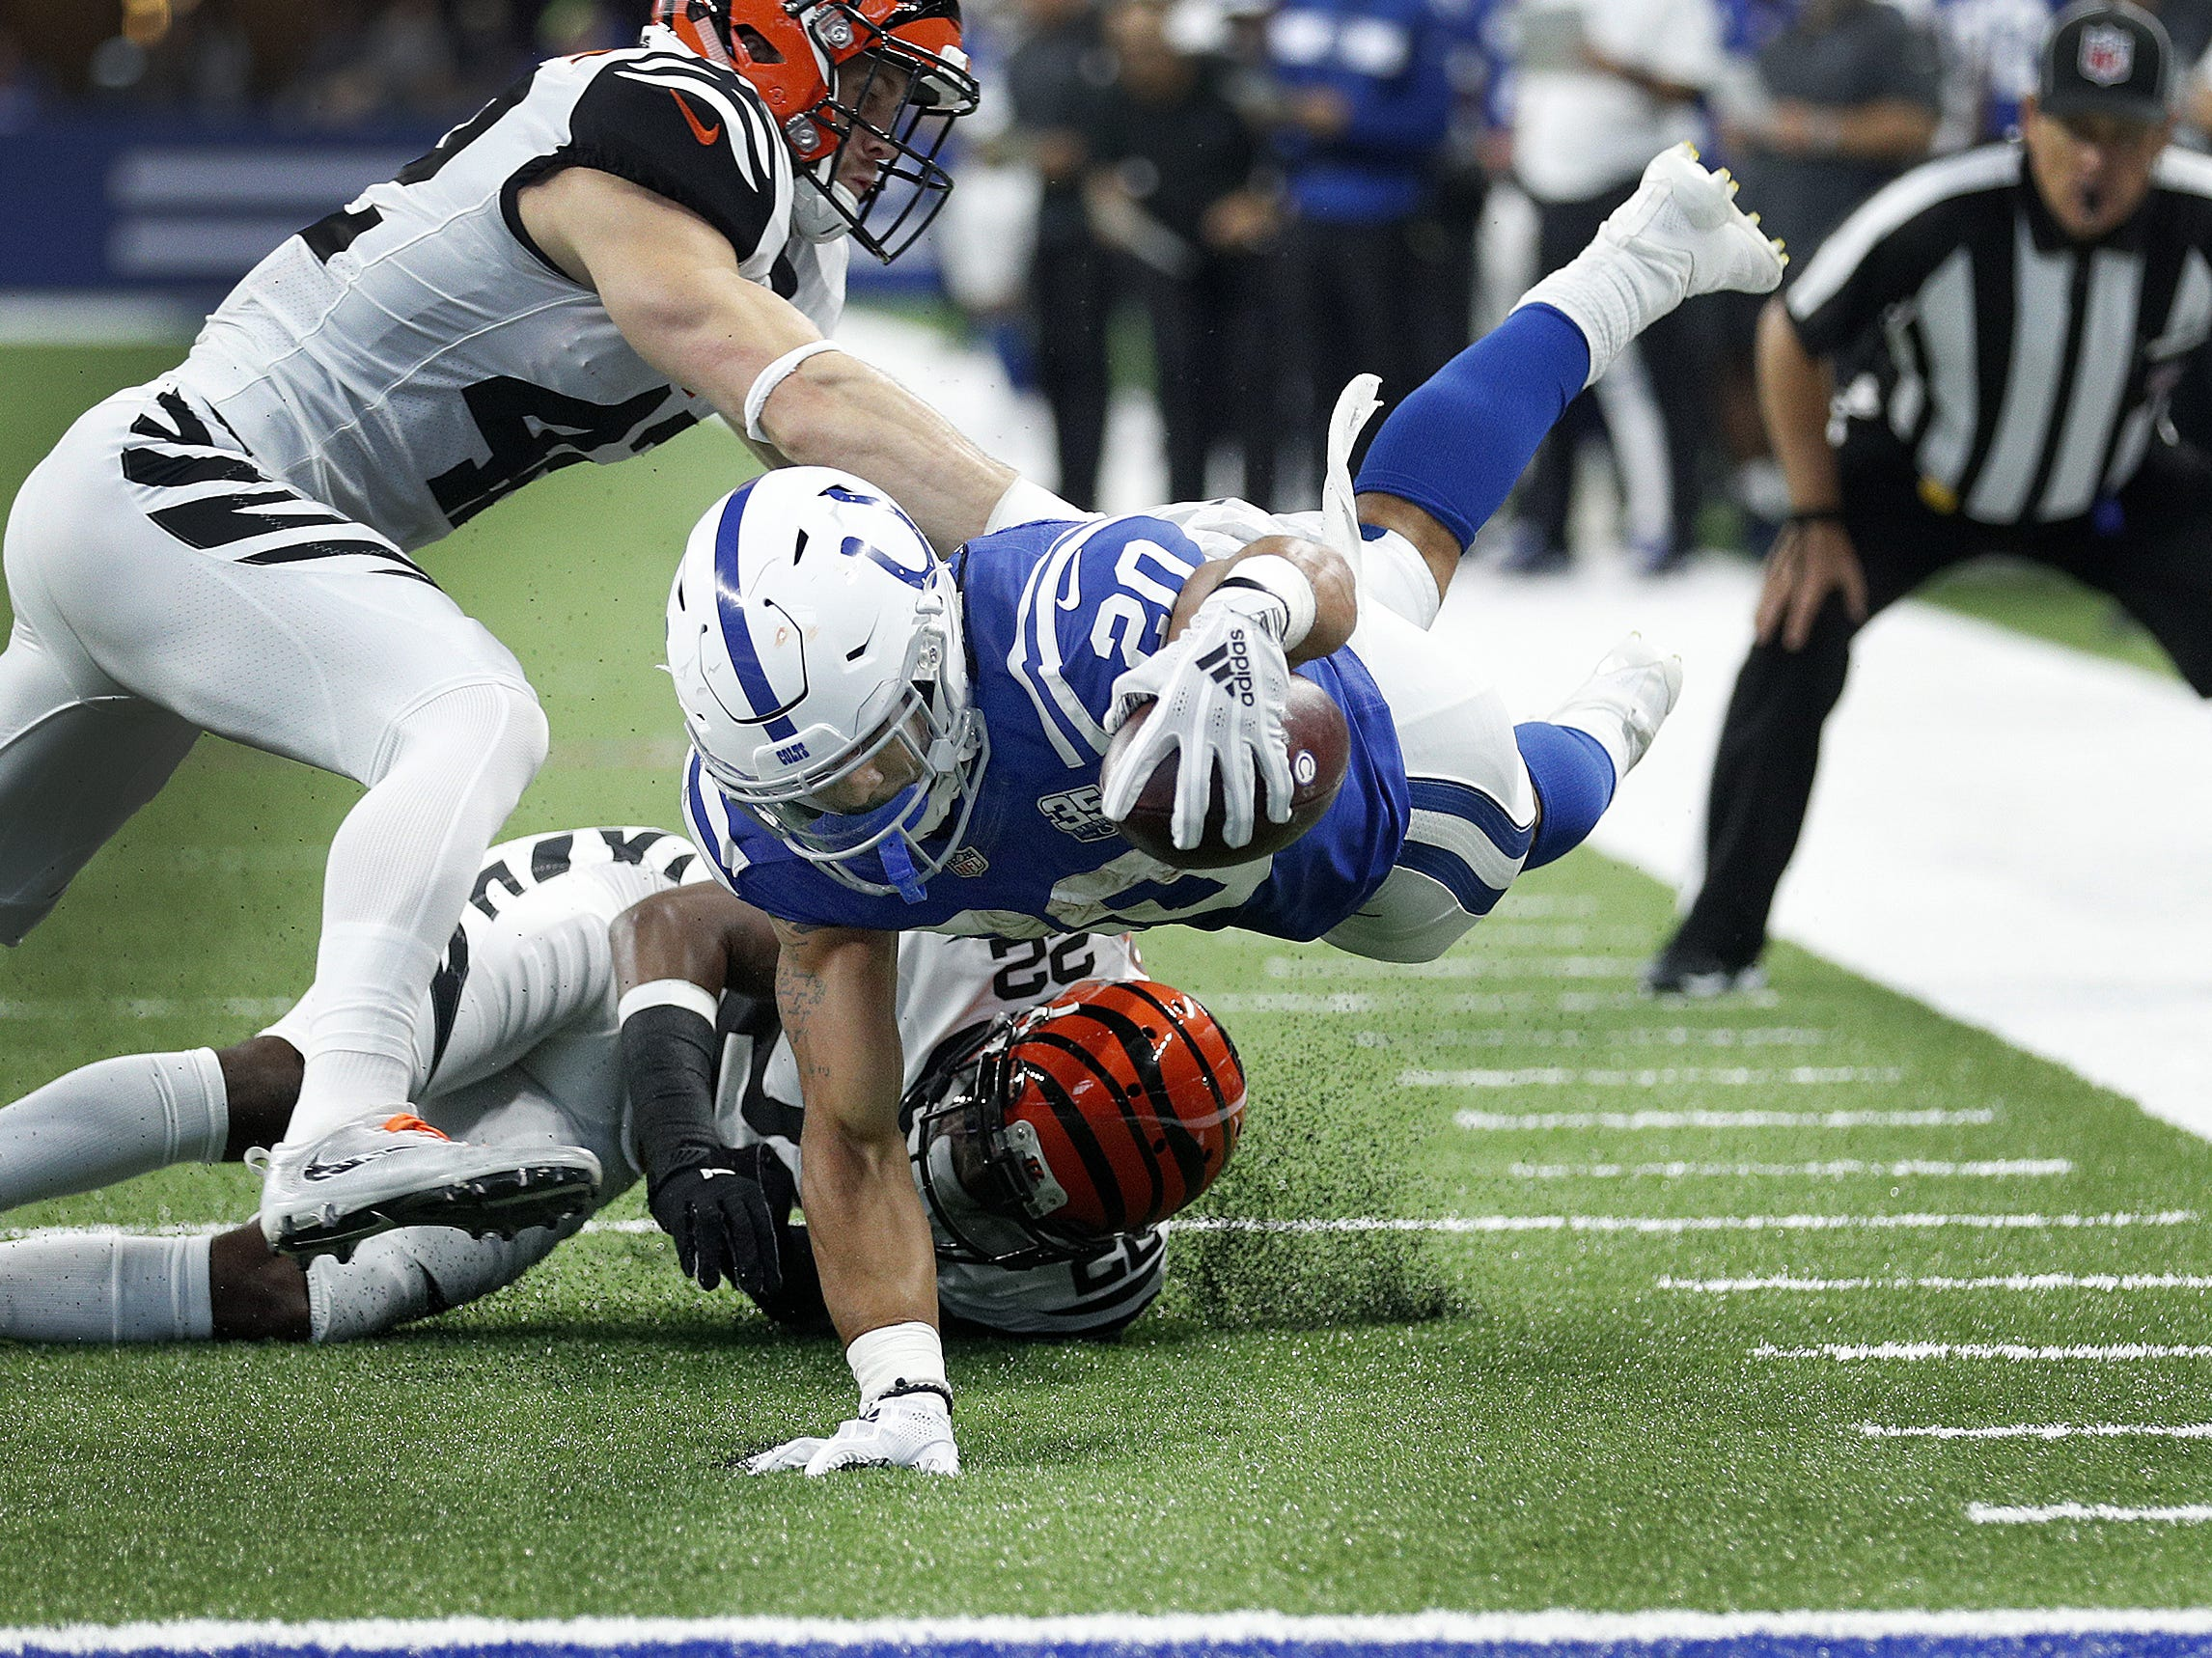 Indianapolis Colts running back Jordan Wilkins (20) reaches for the goal line but is stopped by Cincinnati Bengals safety Clayton Fejedelem (42) and cornerback William Jackson (22) in the first half of their game against the Cincinnati Bengals at Lucas Oil Stadium on Sept. 9, 2018.